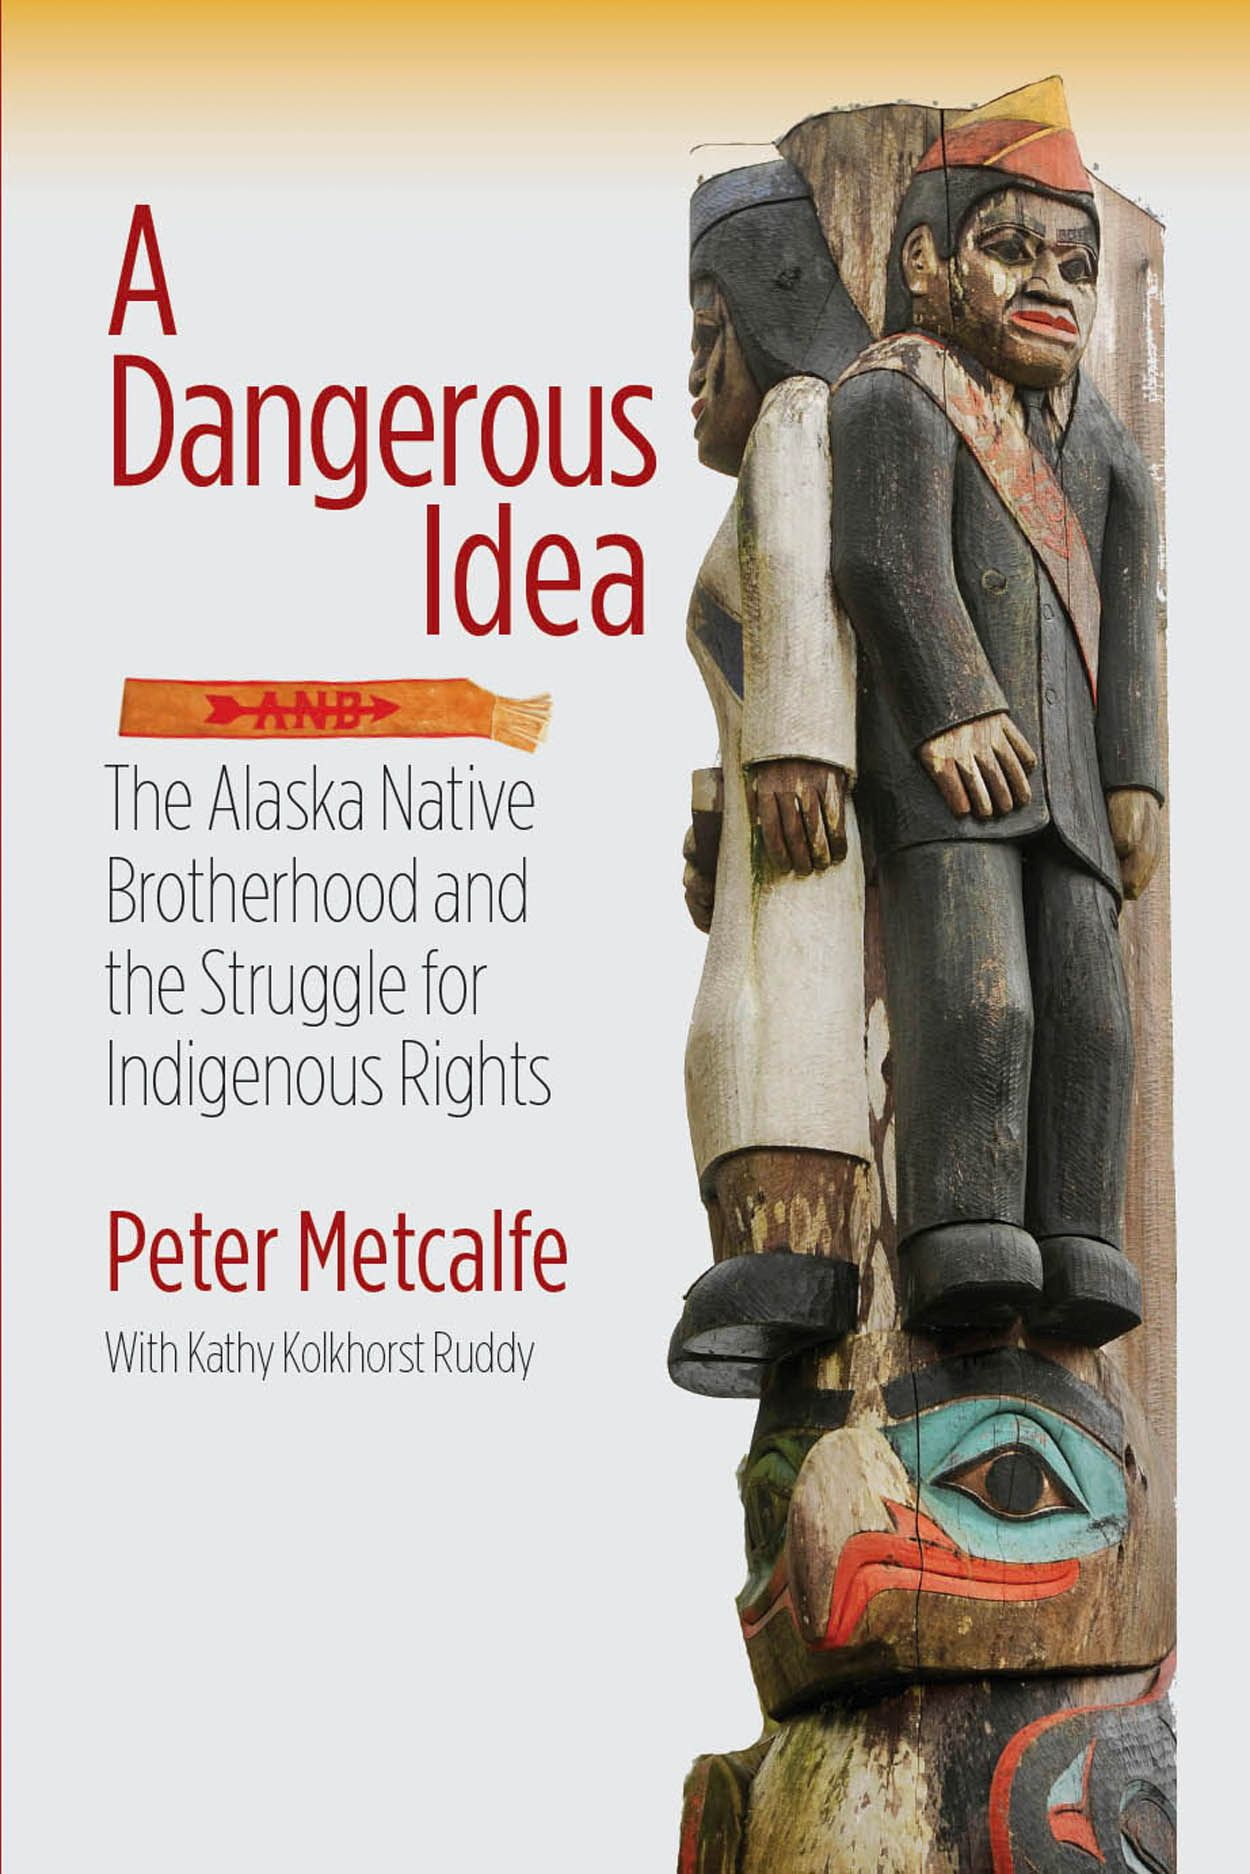 A Dangerous Idea: The Alaska Native Brotherhood and the Struggle for Indigenous Rights